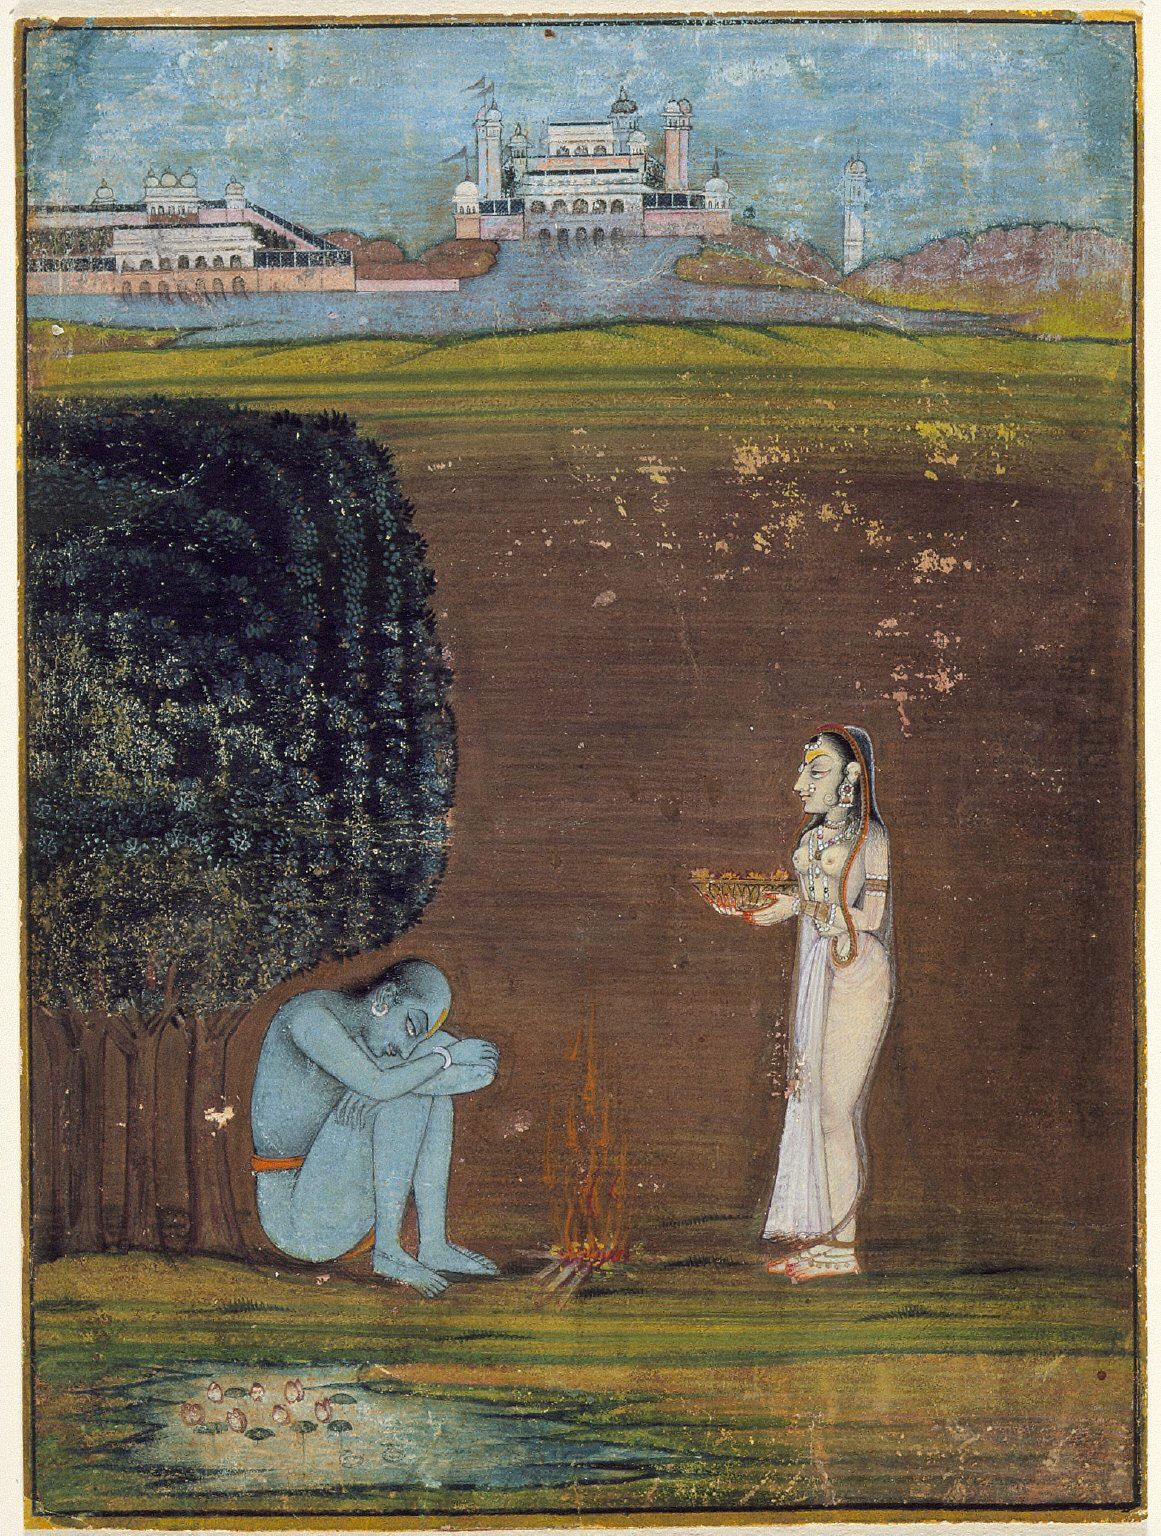 A Woman Making an Offering to an Ascetic